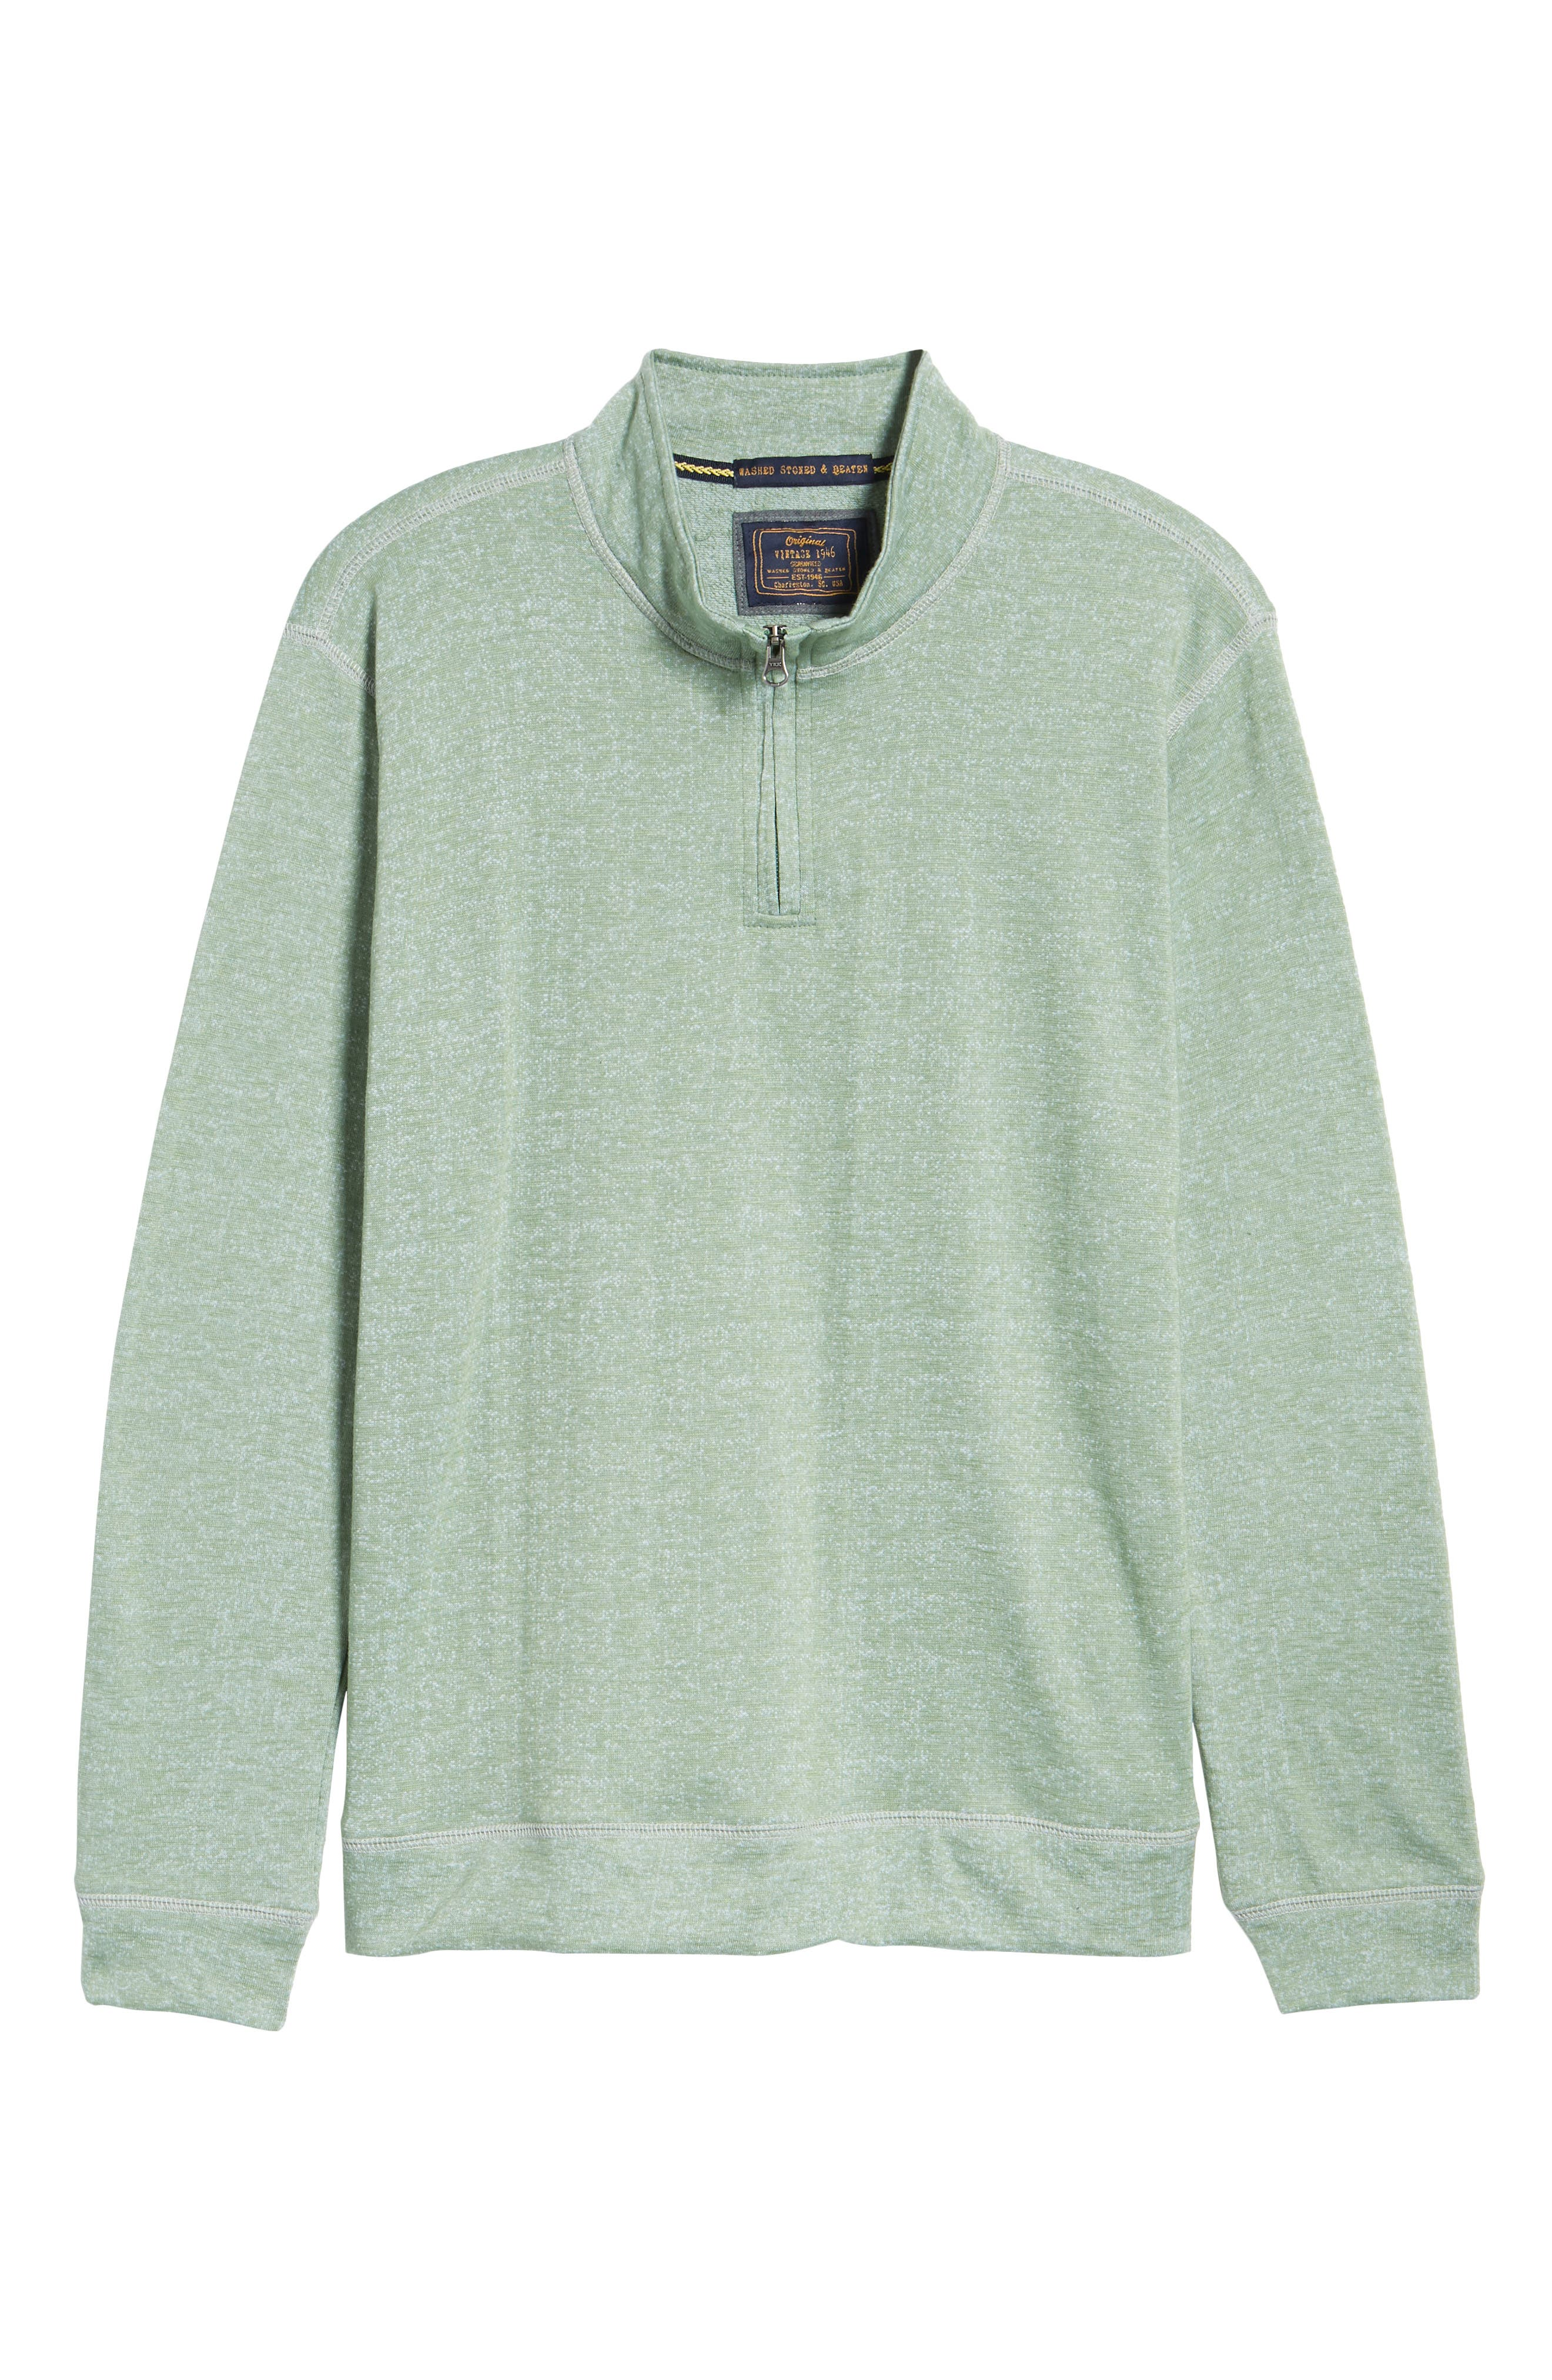 French Terry Quarter Zip Shirt,                             Alternate thumbnail 6, color,                             HEDGE